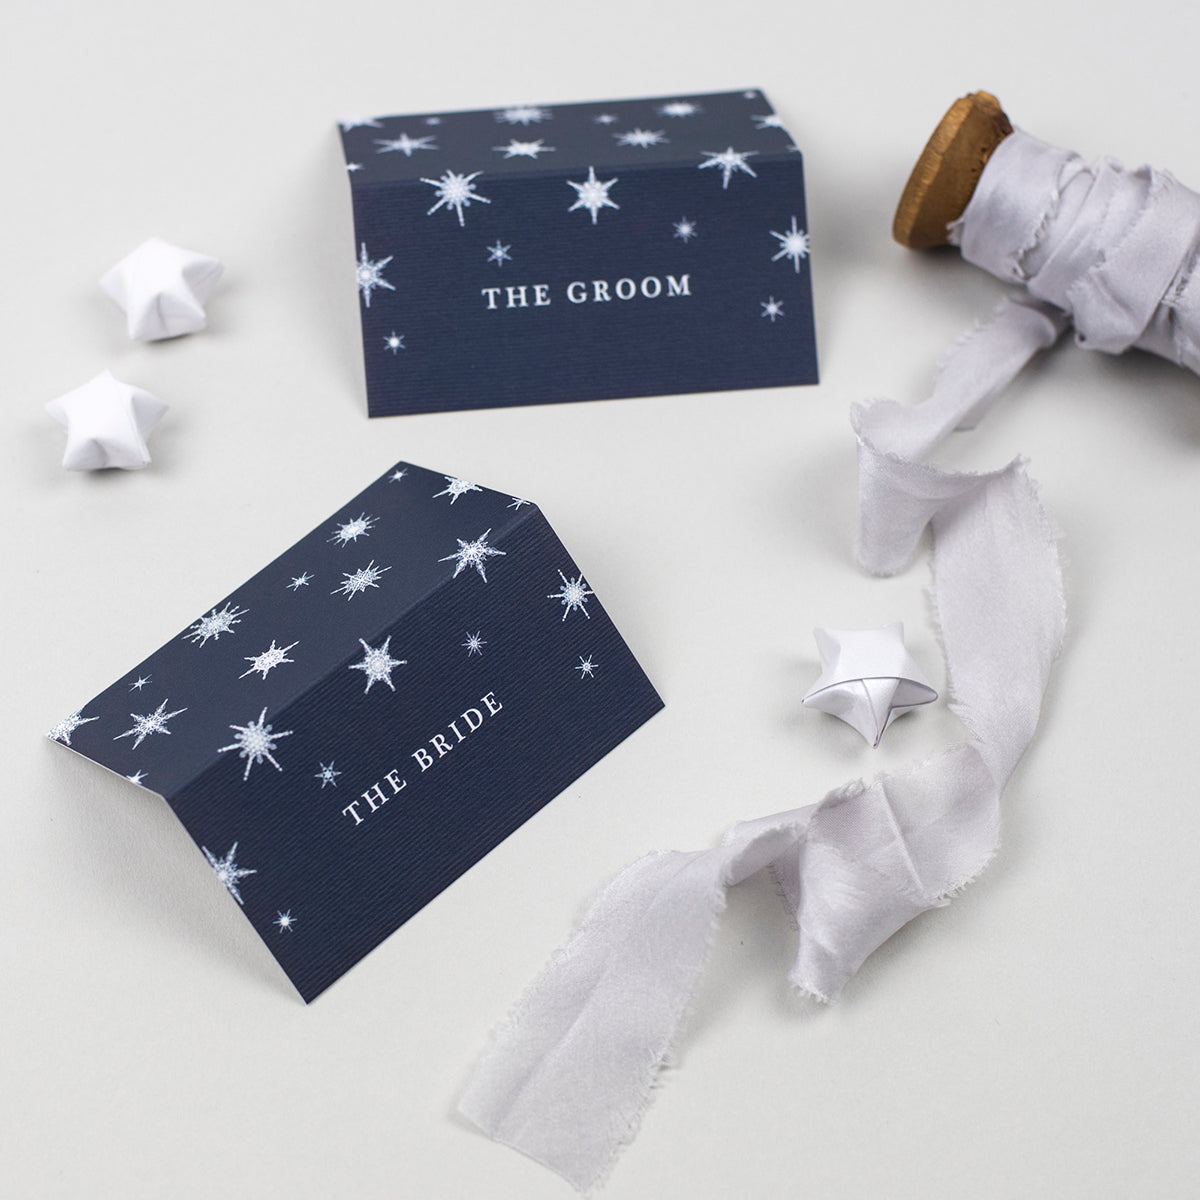 Winter Folded Place Cards